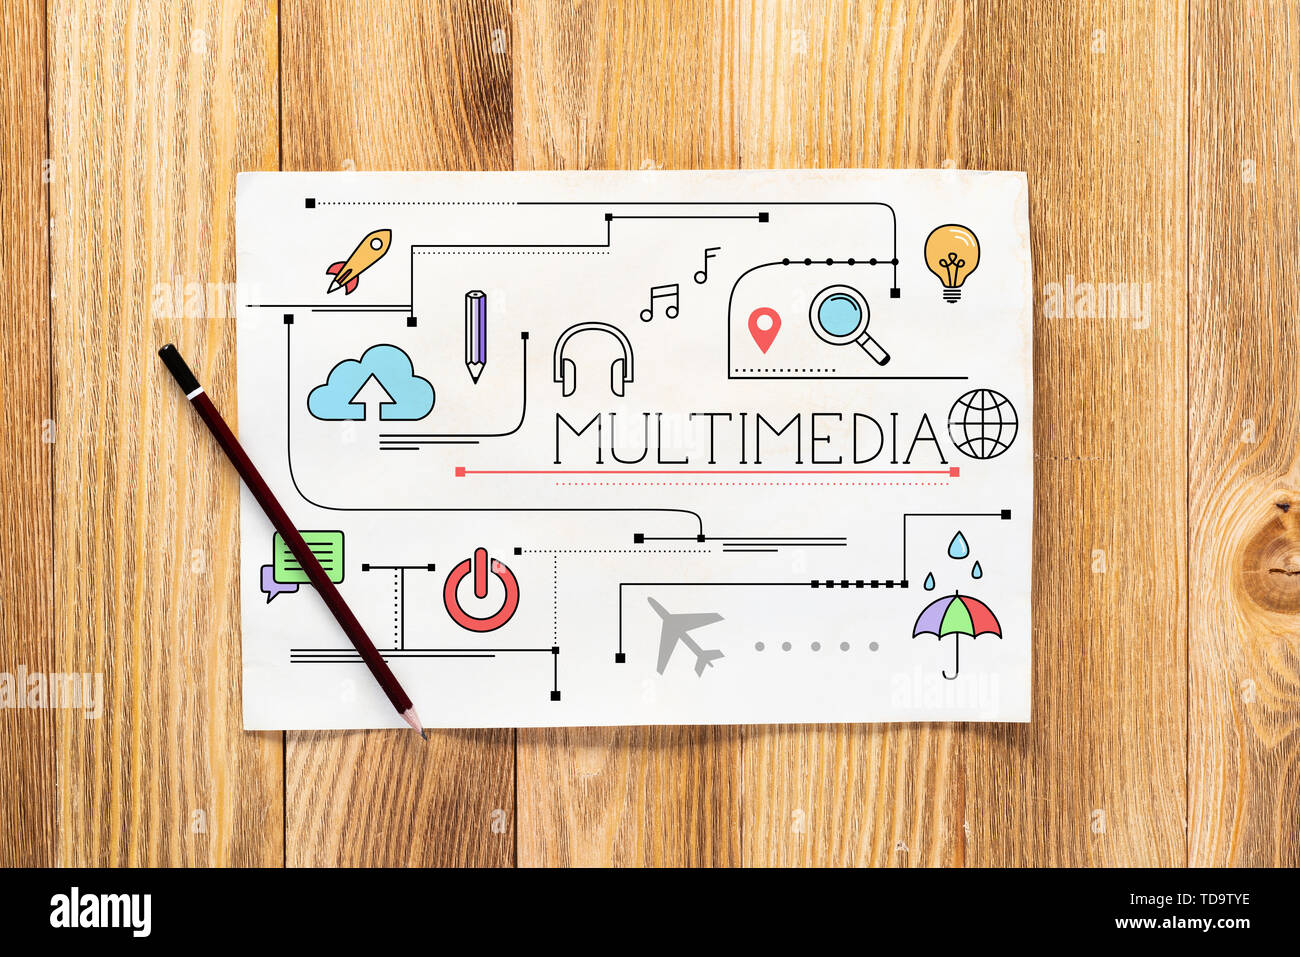 Multimedia content pencil hand drawn with group of social media doodles. Top view of workplace with paper and pencil lying on wooden desk. Commercial  - Stock Image